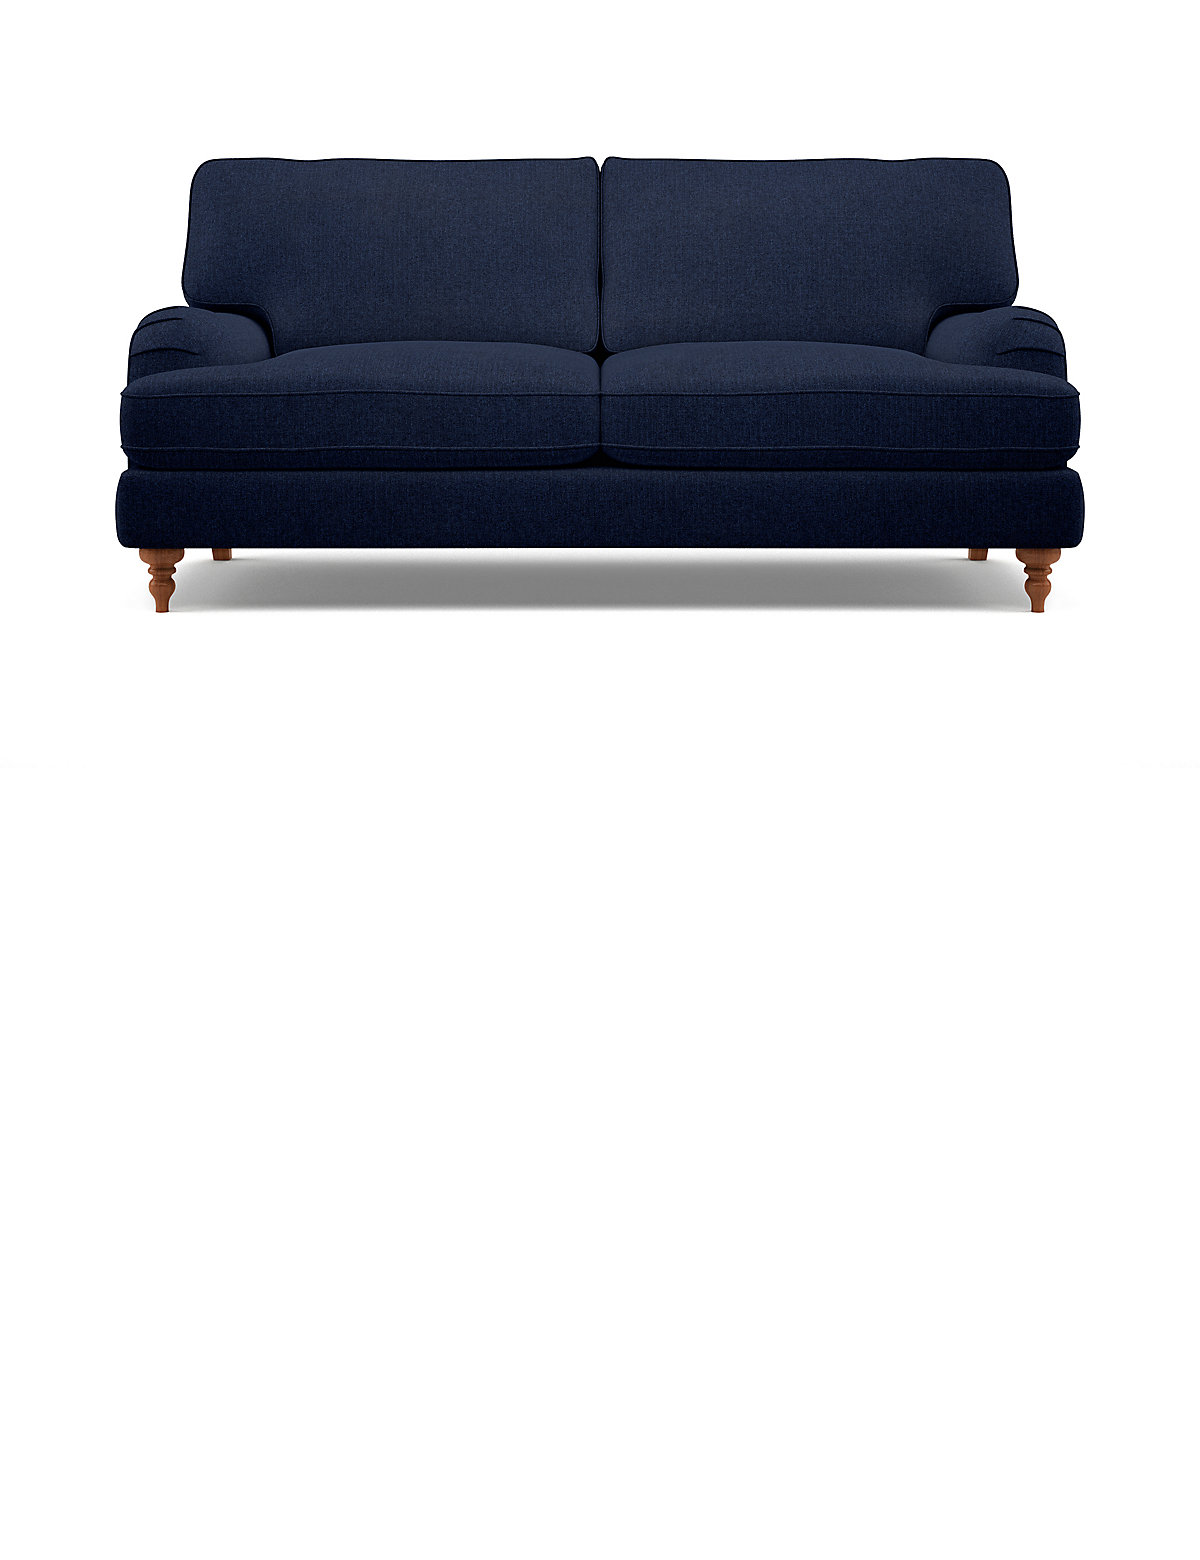 Burlington Medium Sofa.